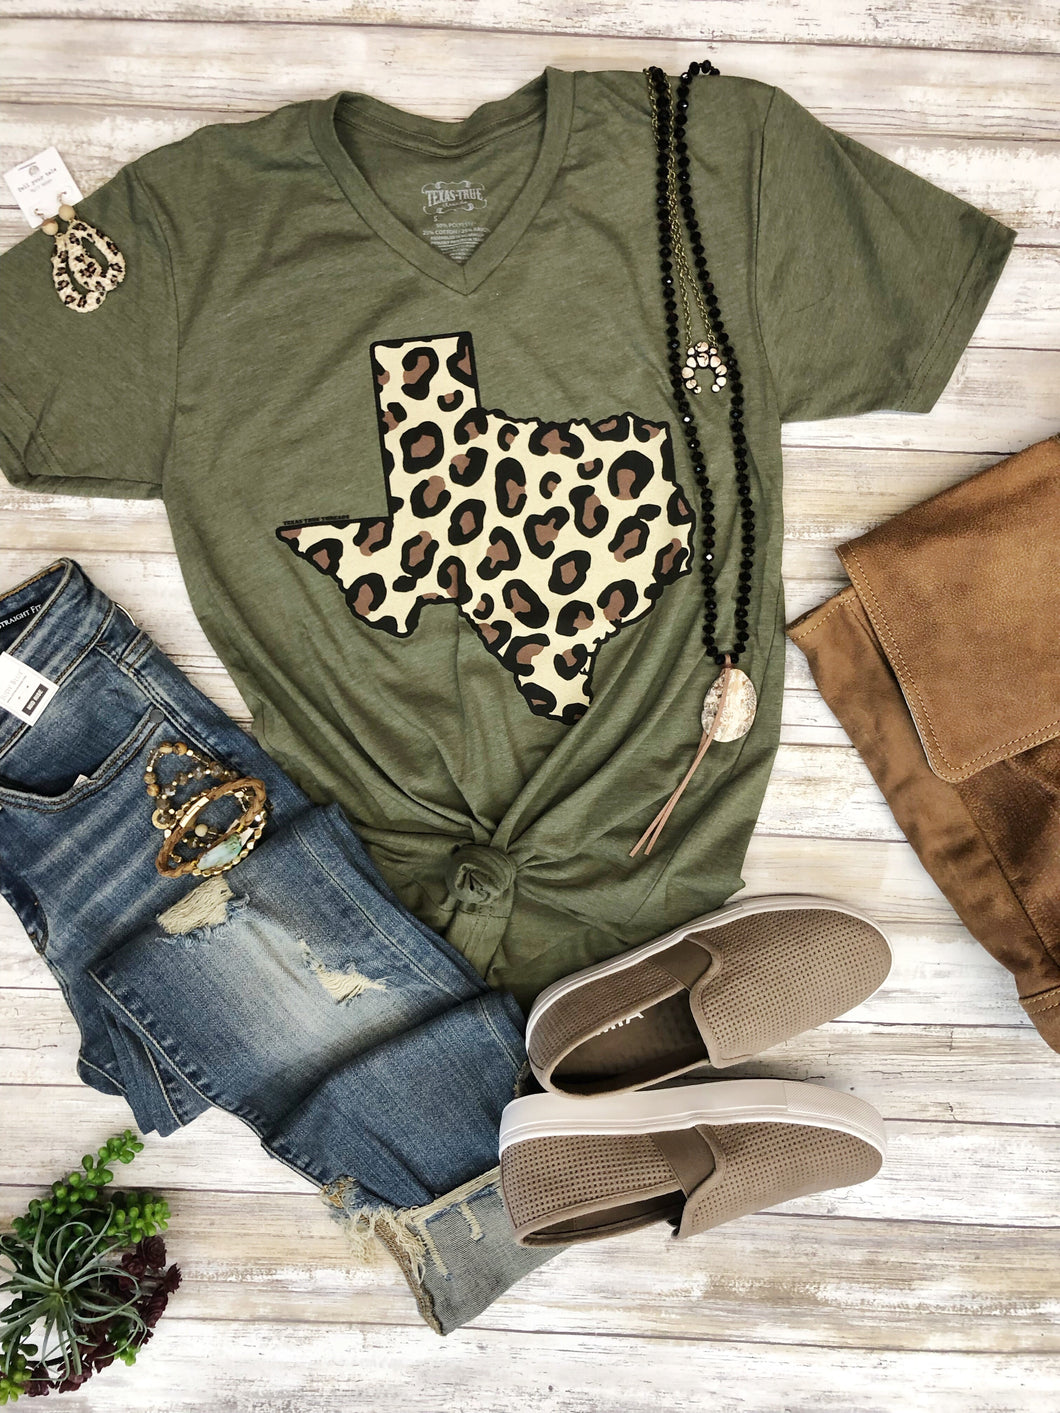 Big Leopard Texas in Olive by Texas True Threads Graphic Tees  Texas True Threads - Horse Creek Boutique